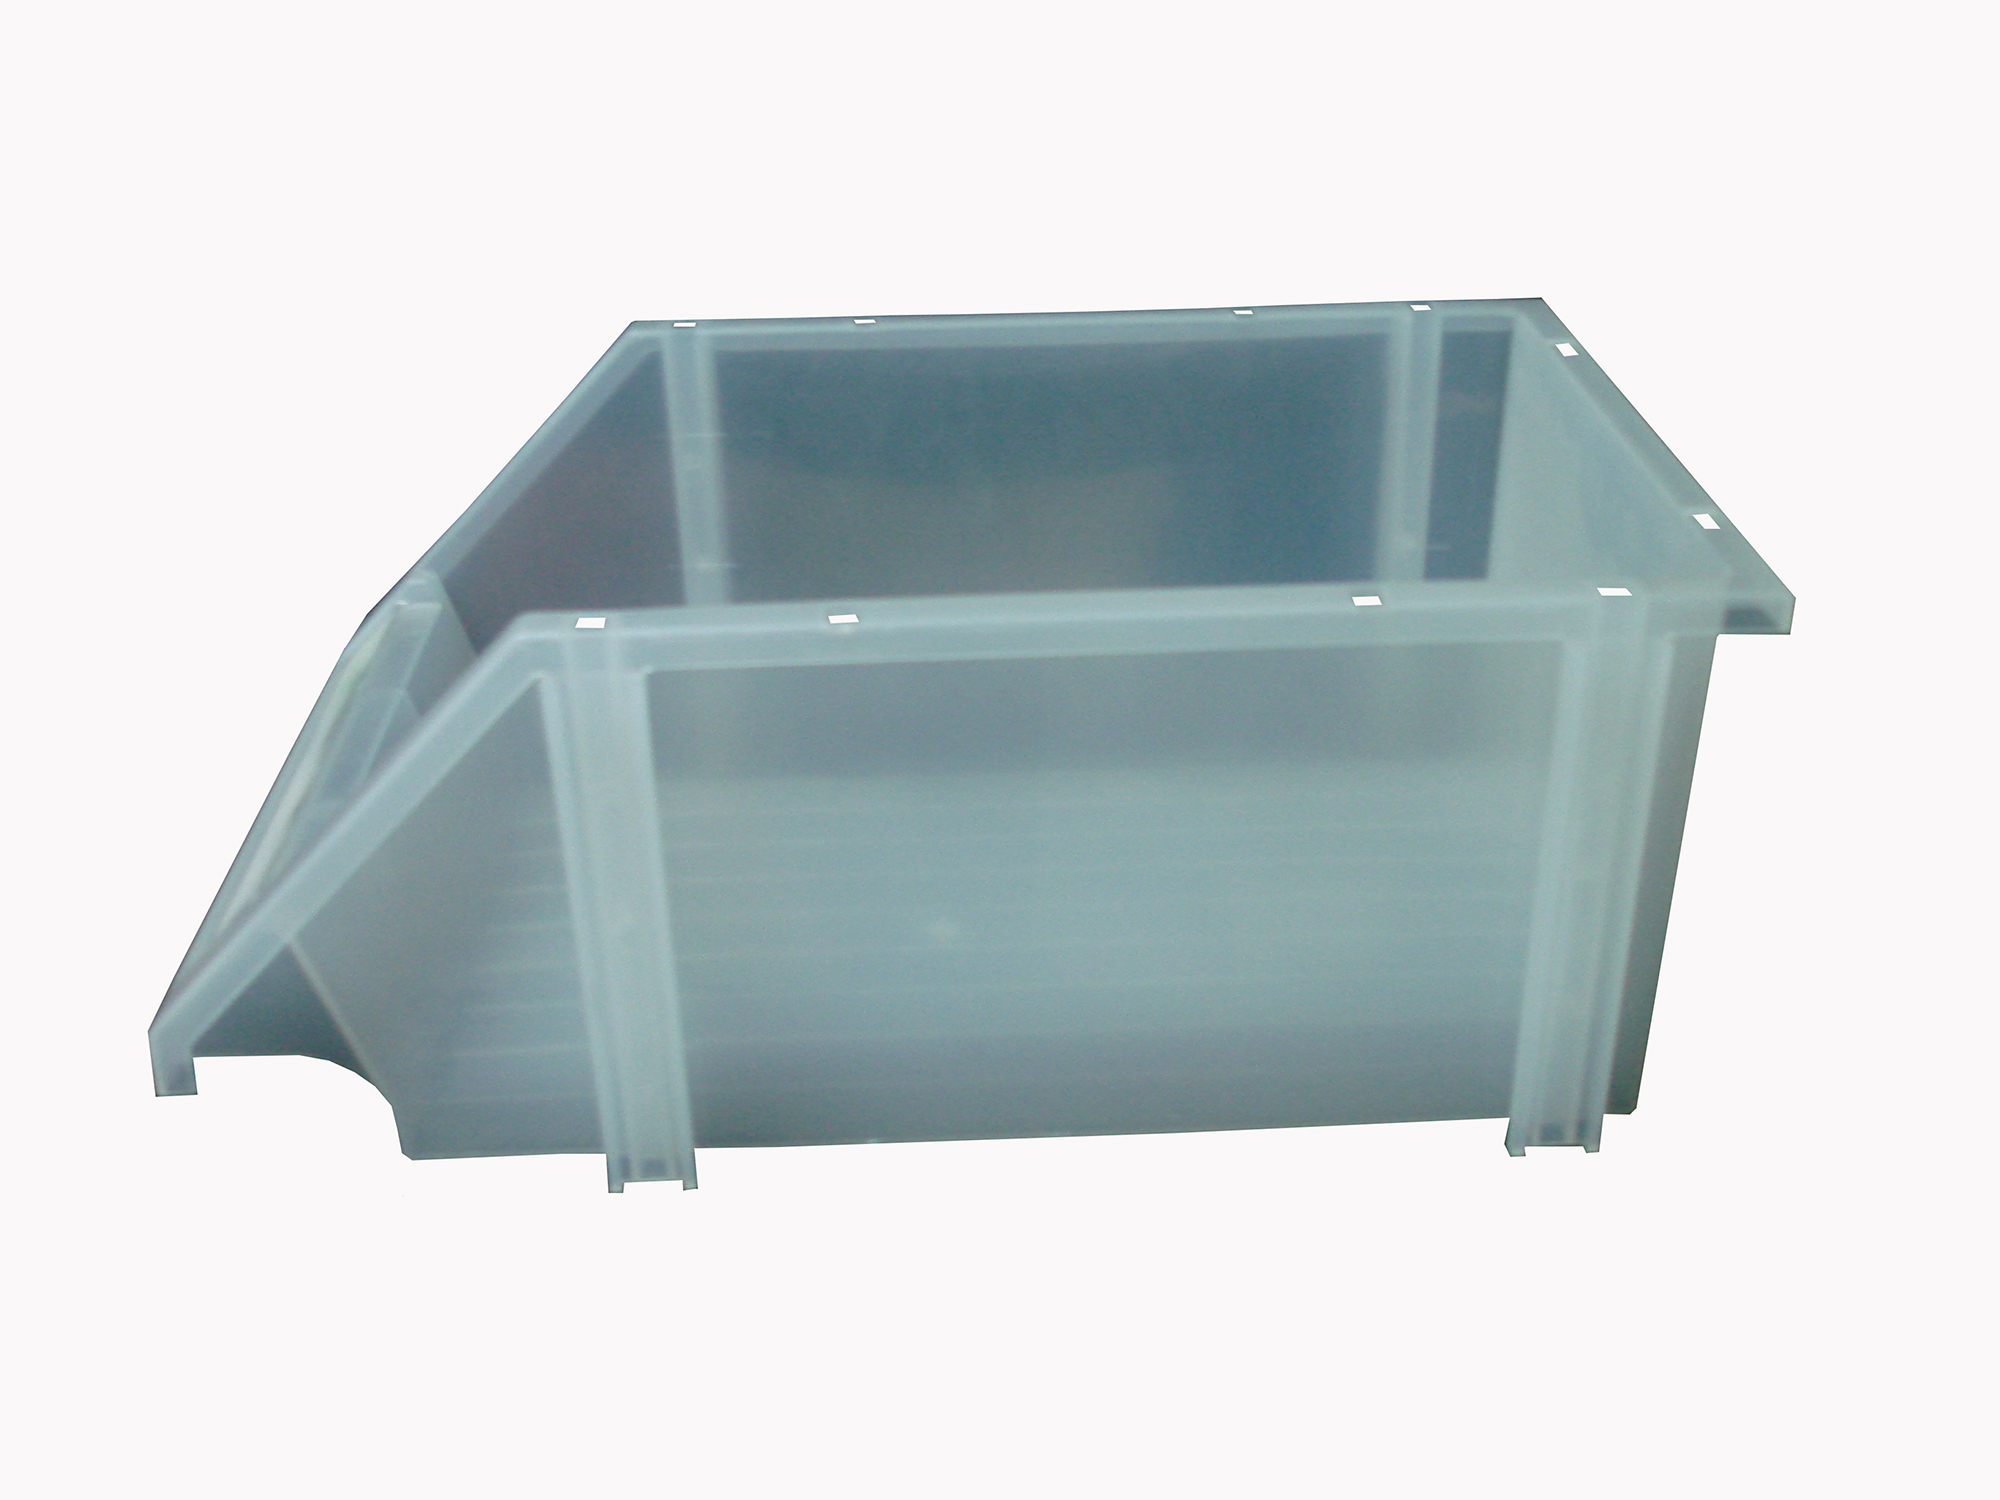 KCT K2035T Stackable Bin Translucent (large) (RHB0275)